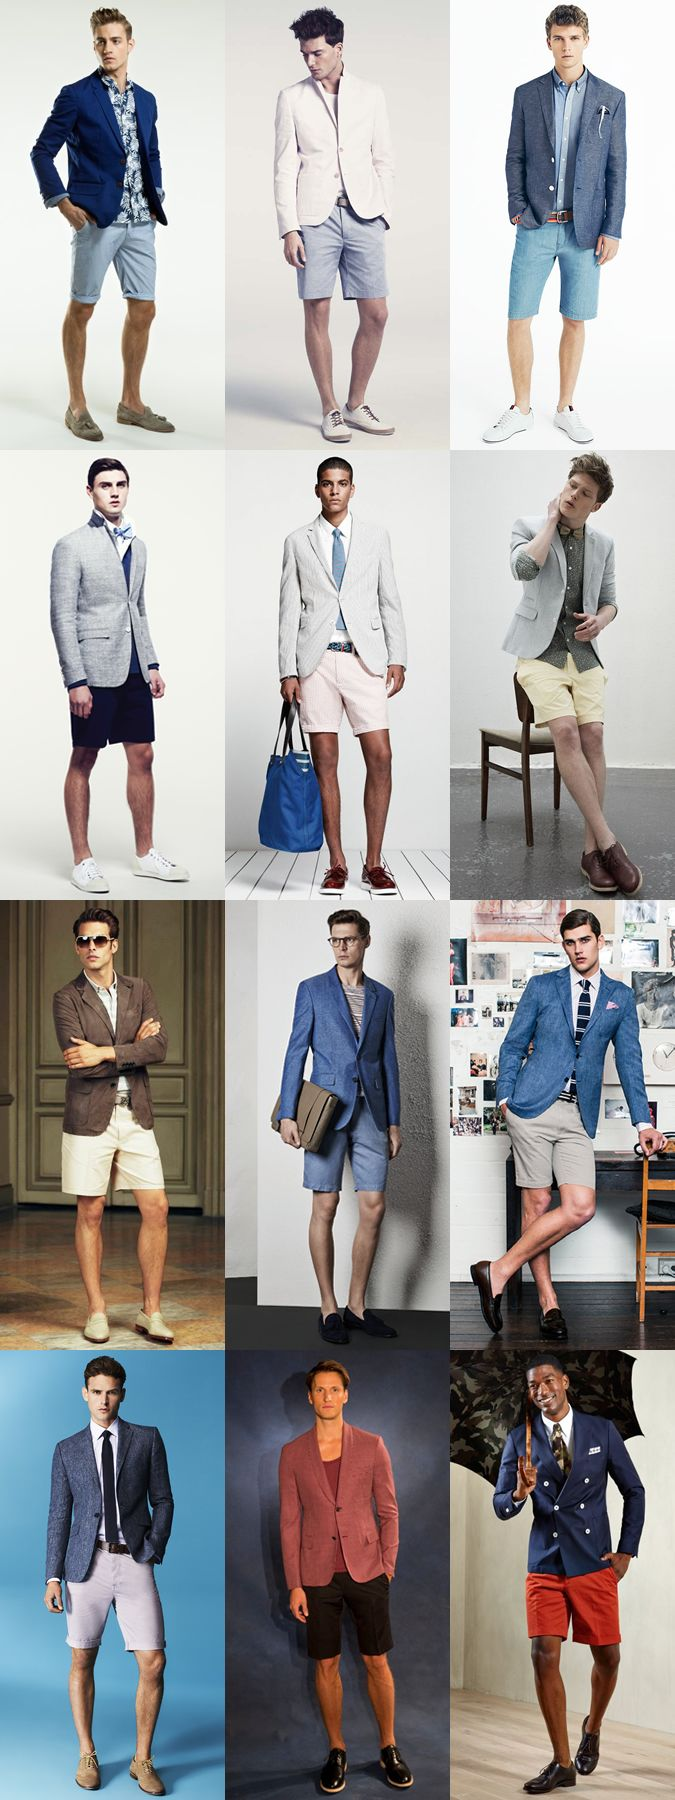 The short suit is becoming a popular choice for style-conscious gents who want to separate their tailoring collection and look from the crowd. Offering the perfect way to appear put together, stylish and at ease during the spring/summer months, they will also ensure you remain cool and comfortable as the temperature rises. We bring you some guidelines to keep in mind when purchasing a short suit and show you how to wear one in a variety of modern and stylish ways.